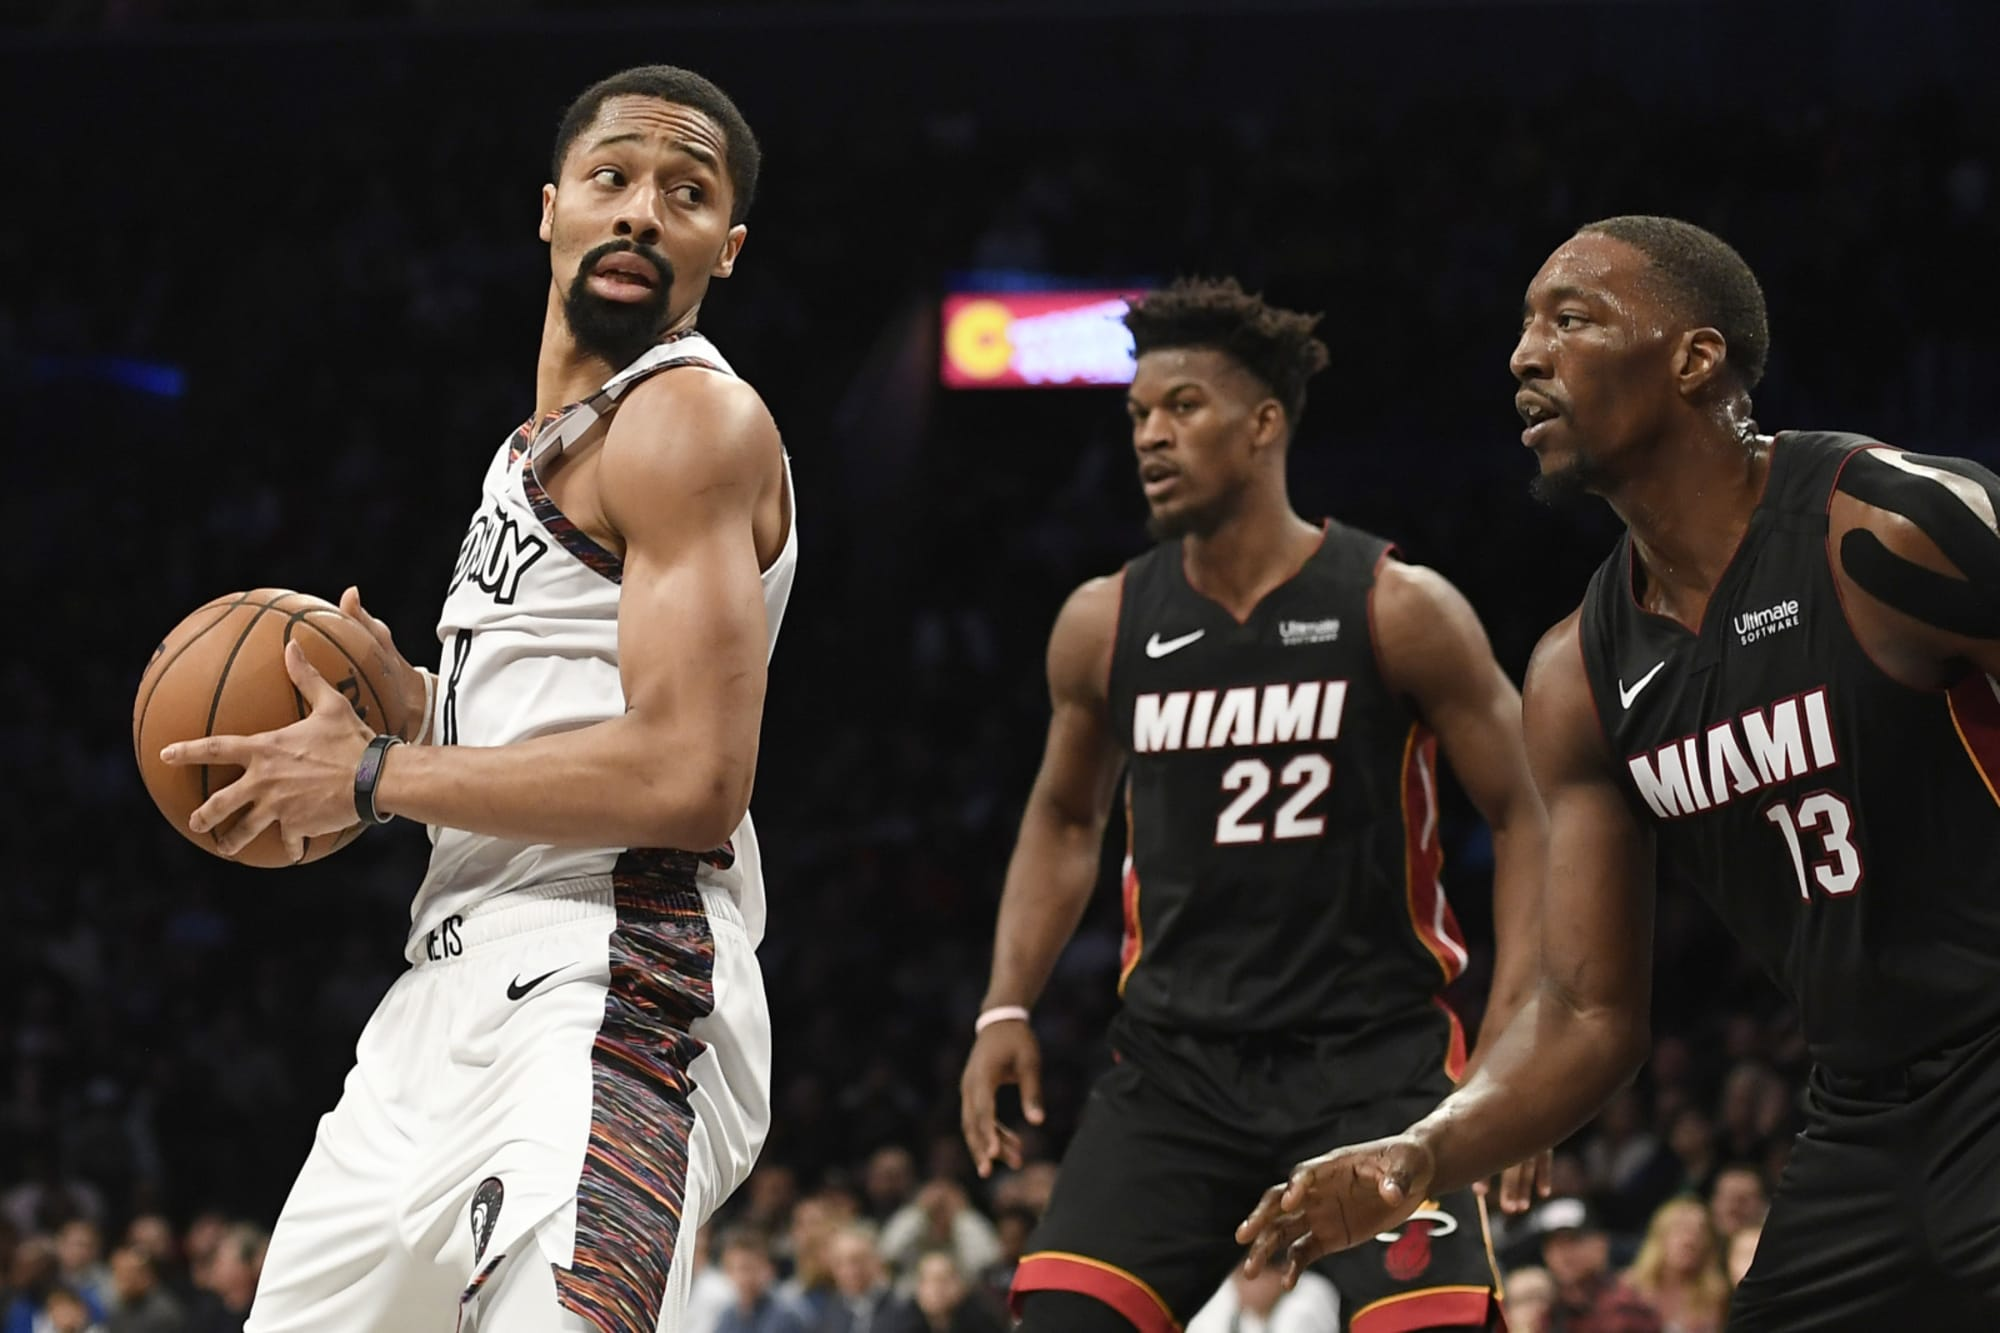 5 Takeaways From The Miami Heat's Loss At The Hand Of The